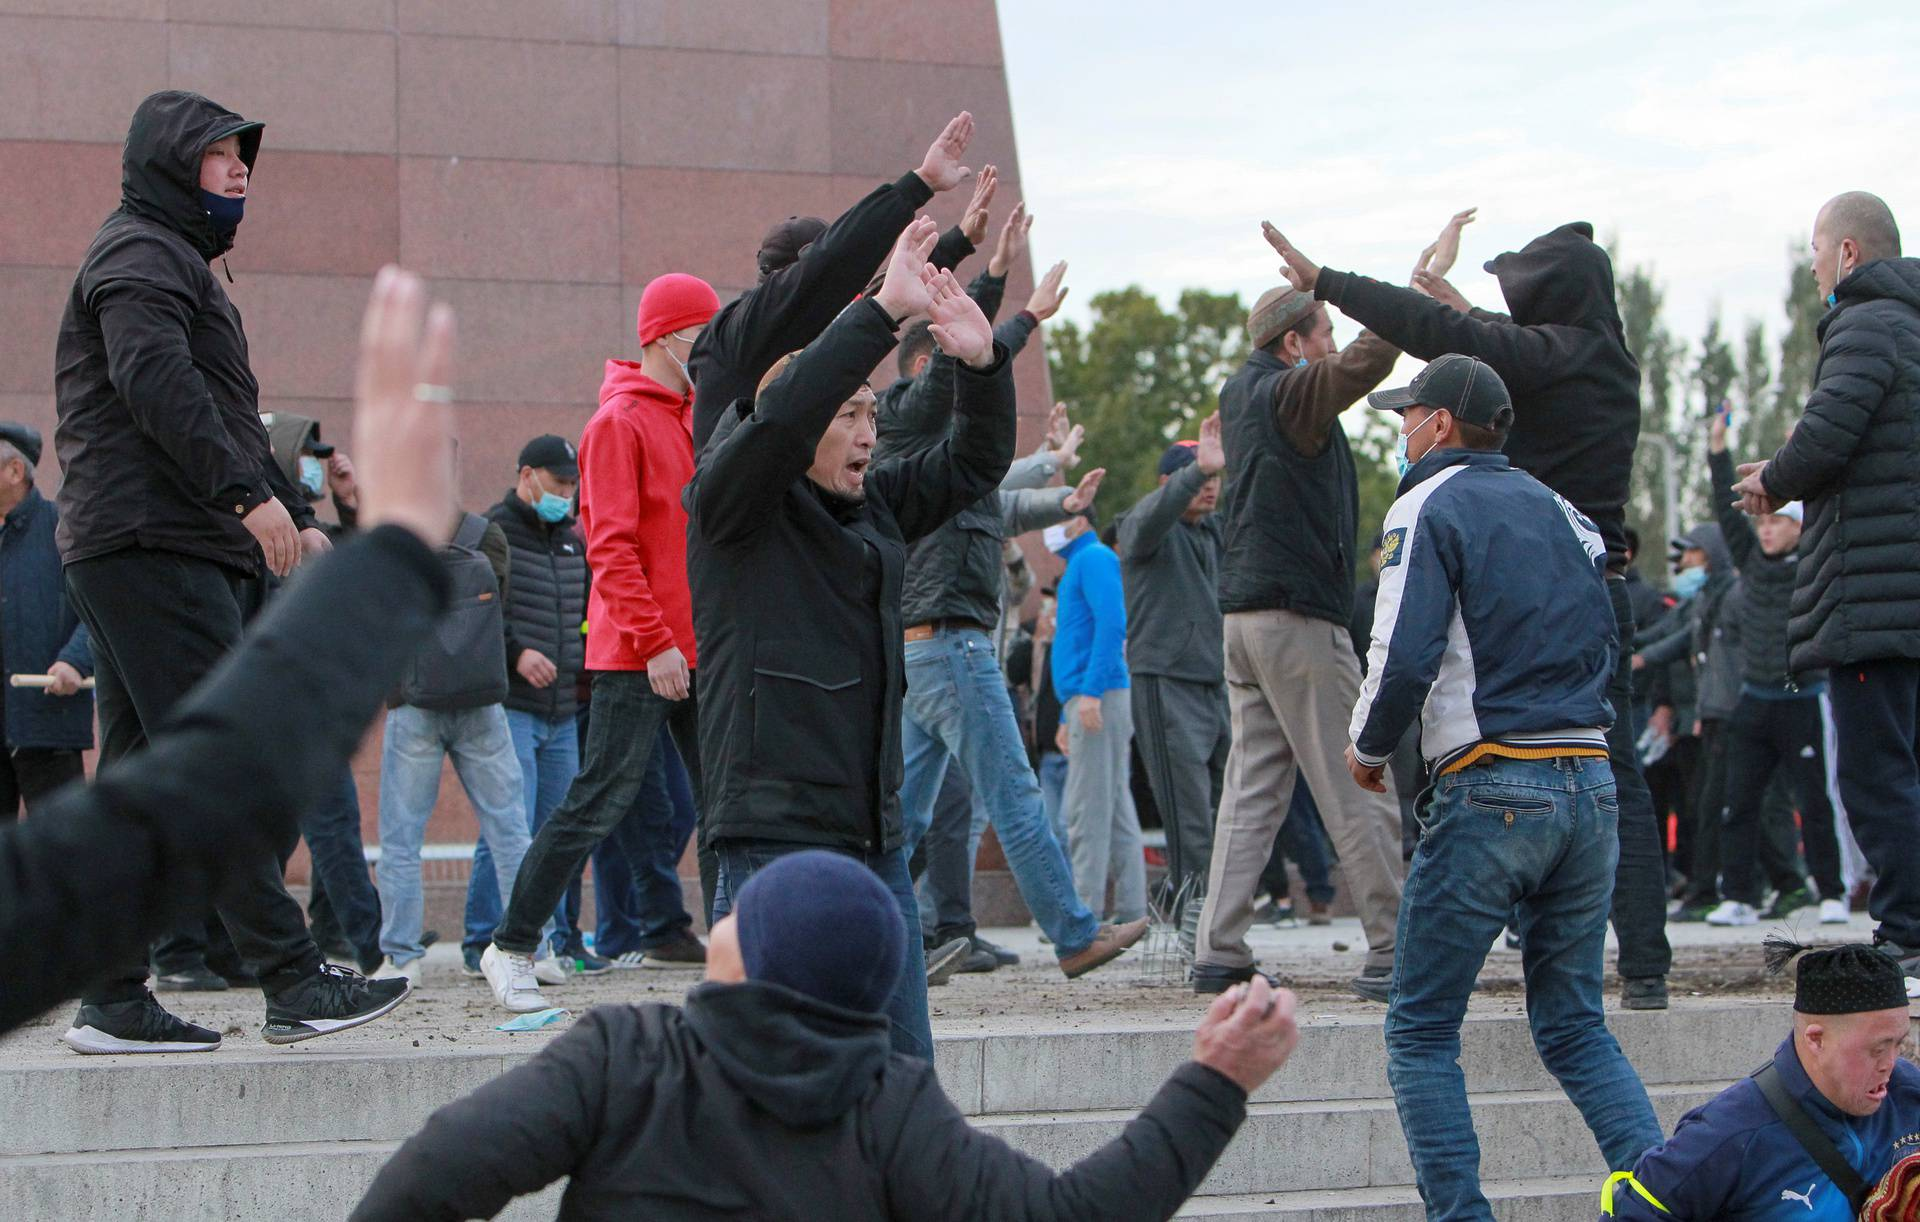 Demonstrators from rival political groups react during a rally in Bishkek